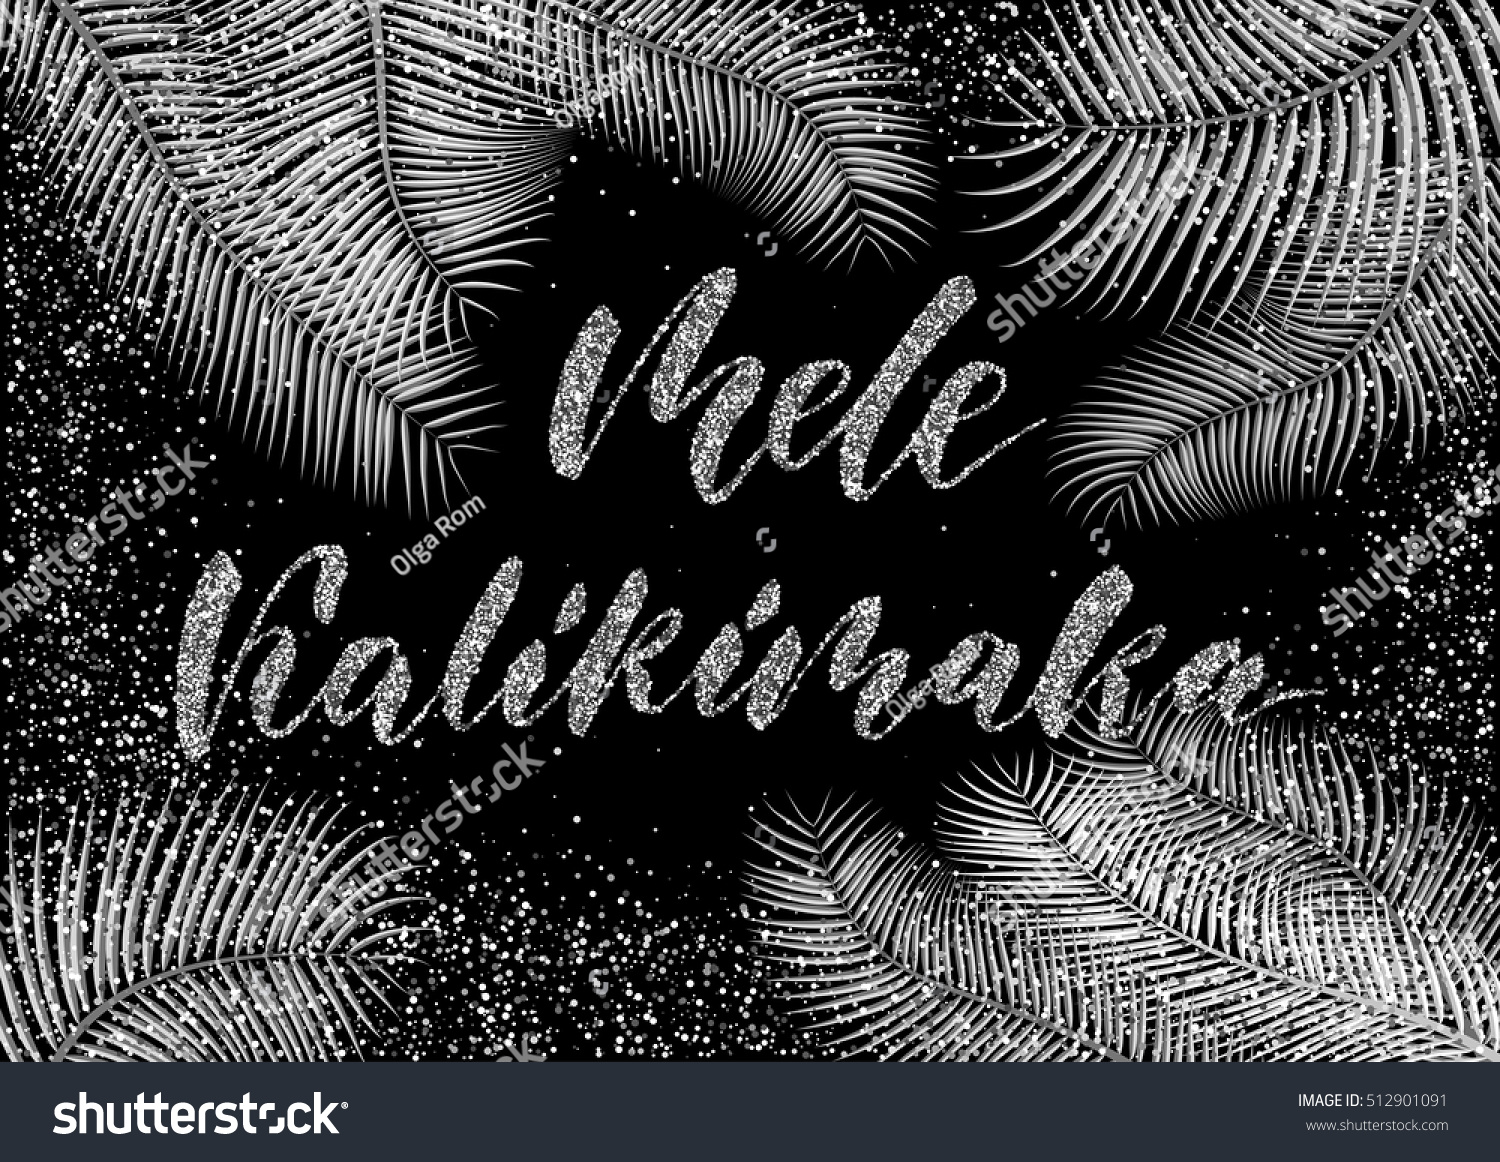 Mele Kalikimaka Happy New Year Christmas Stock Vector (Royalty Free ...